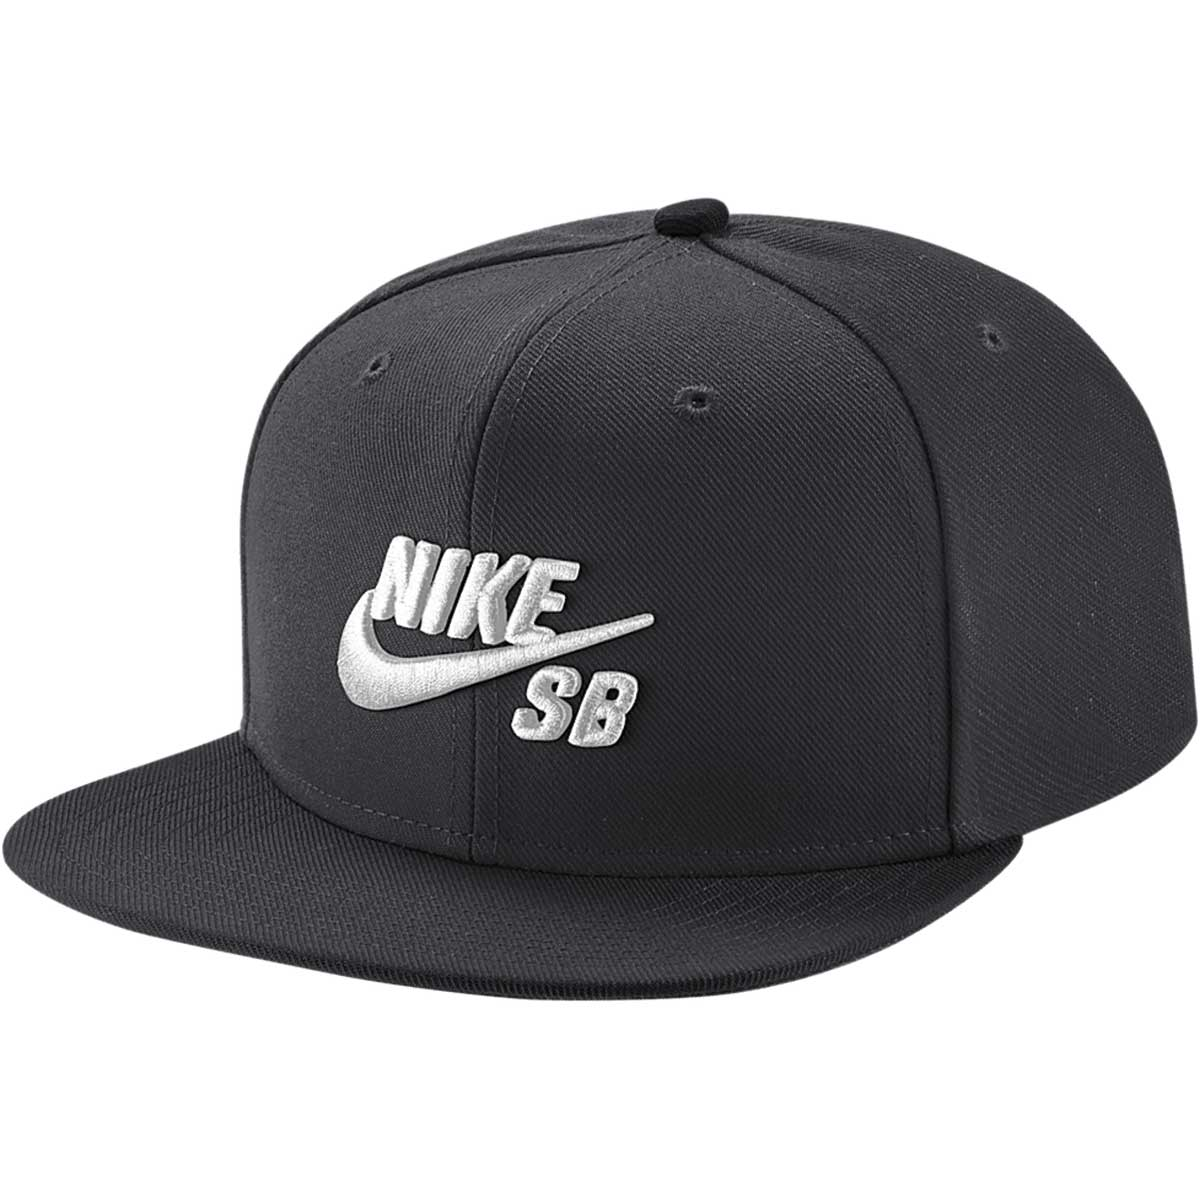 NIKE SB Cap Icon Pro Black White Snapback New Skateboard Hat FREE POST